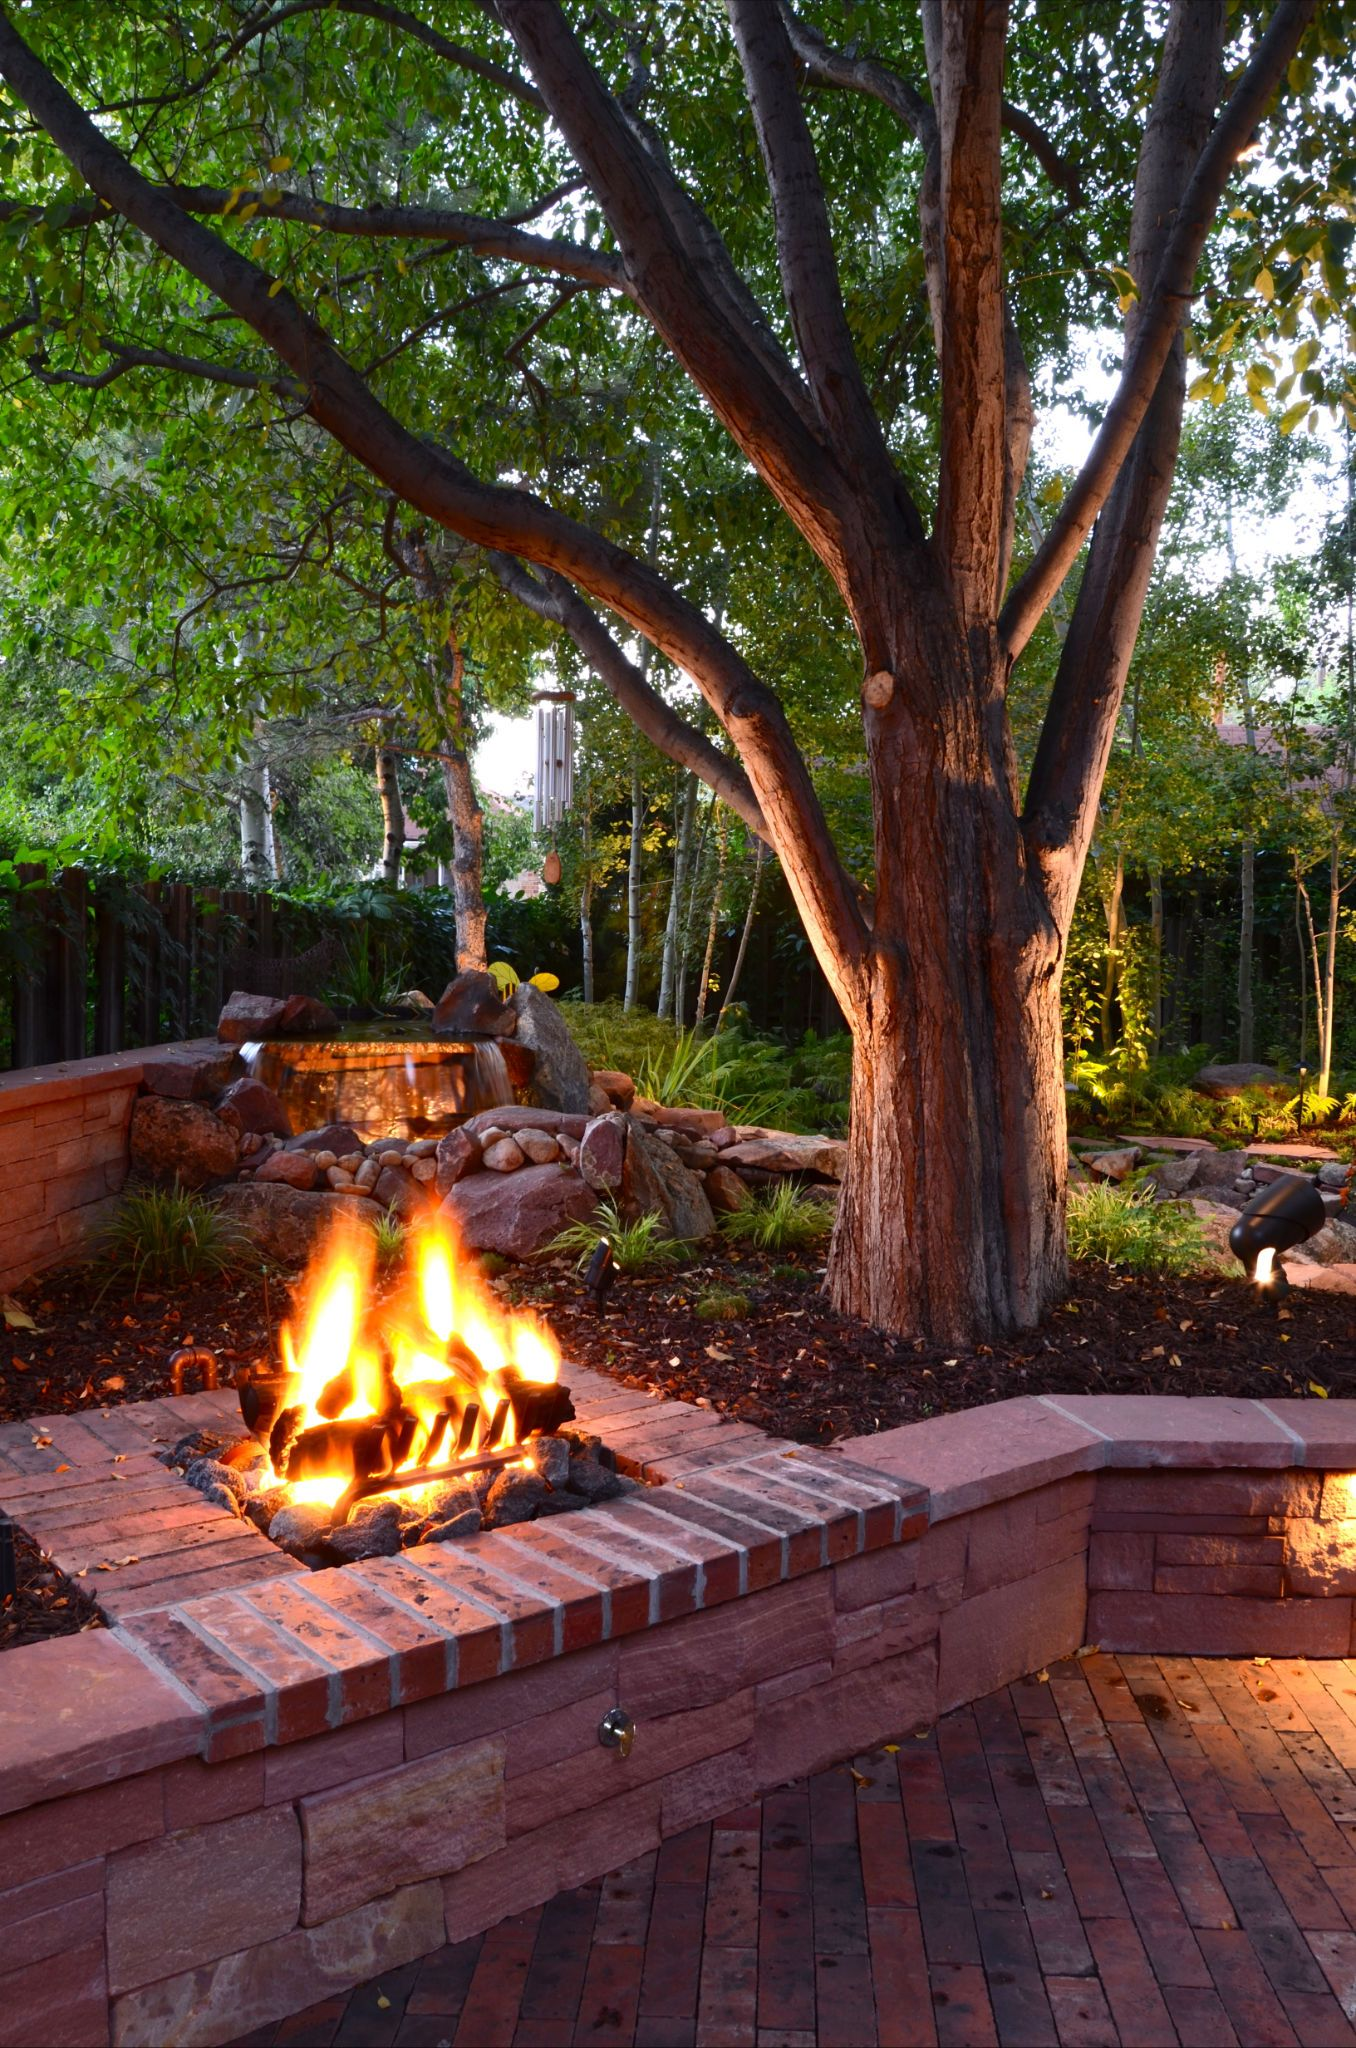 Outdoor Gas Firepit In Denver Backyard Fire Pit Landscaping Backyard Fire Deck Around Trees